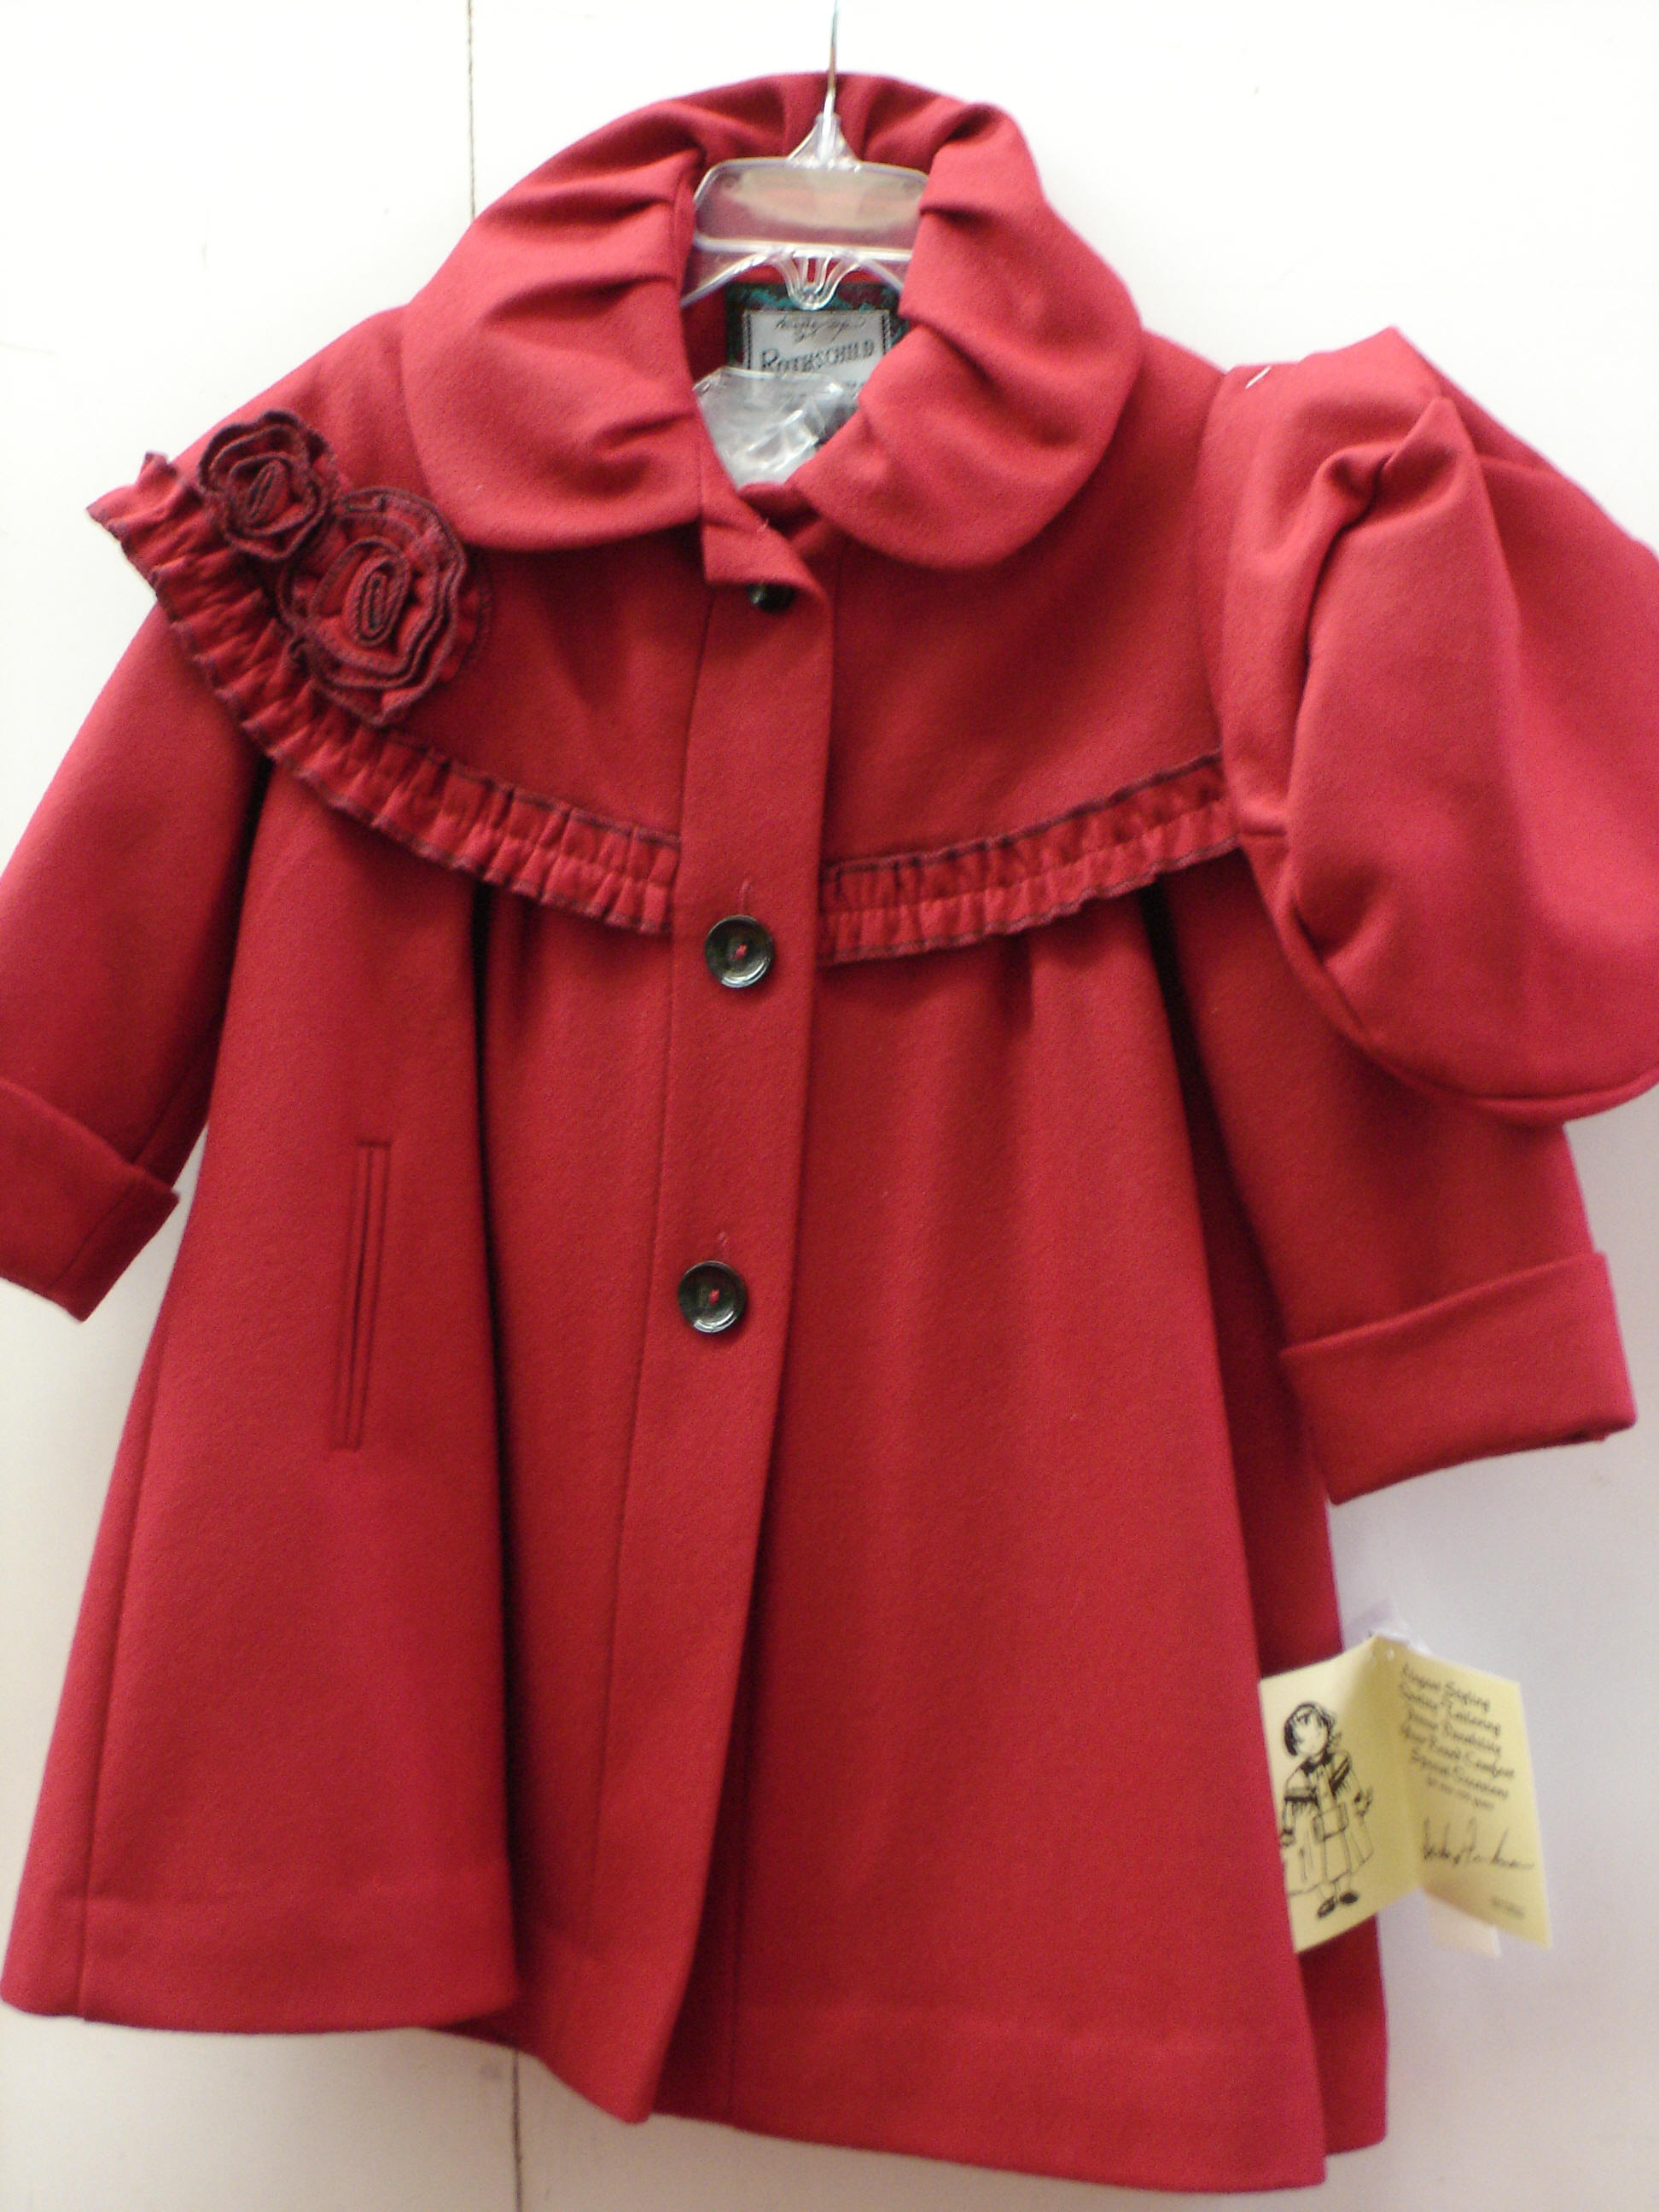 cc7678645875 This cute wool coat by Rothschild is offered in sizes T-2 thru T-4 and 4